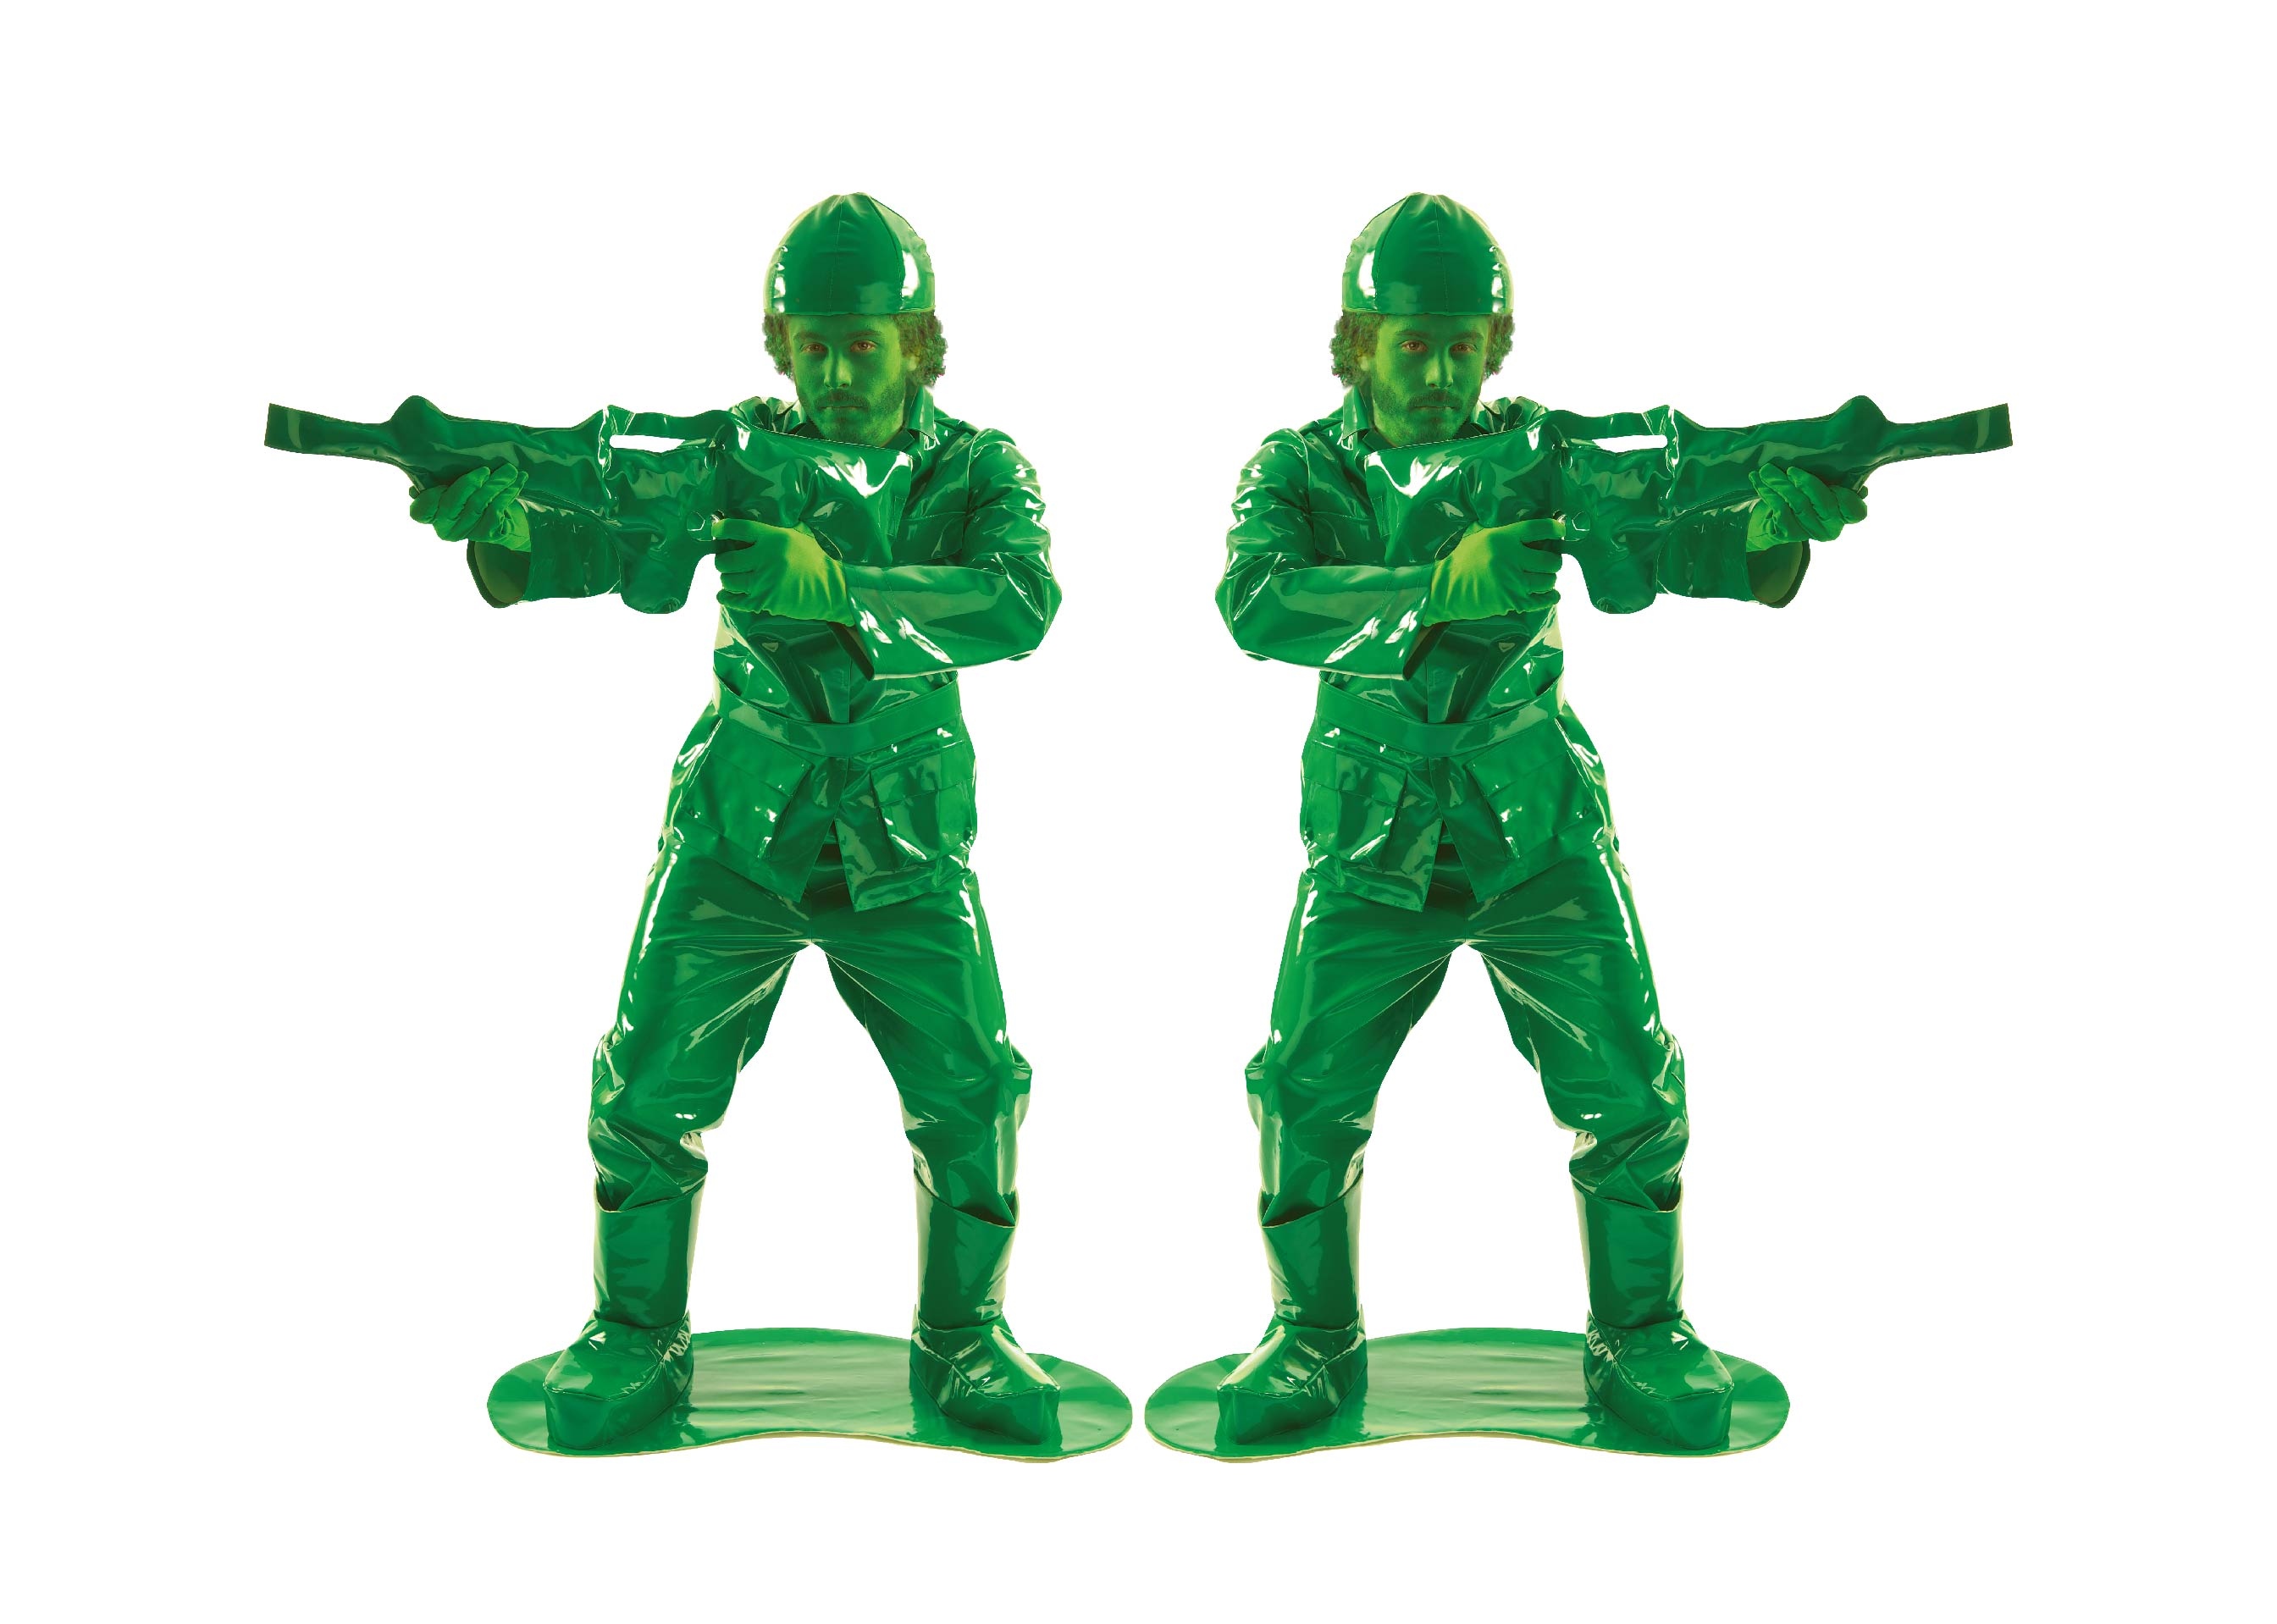 Men wearing green toy army men costumes.